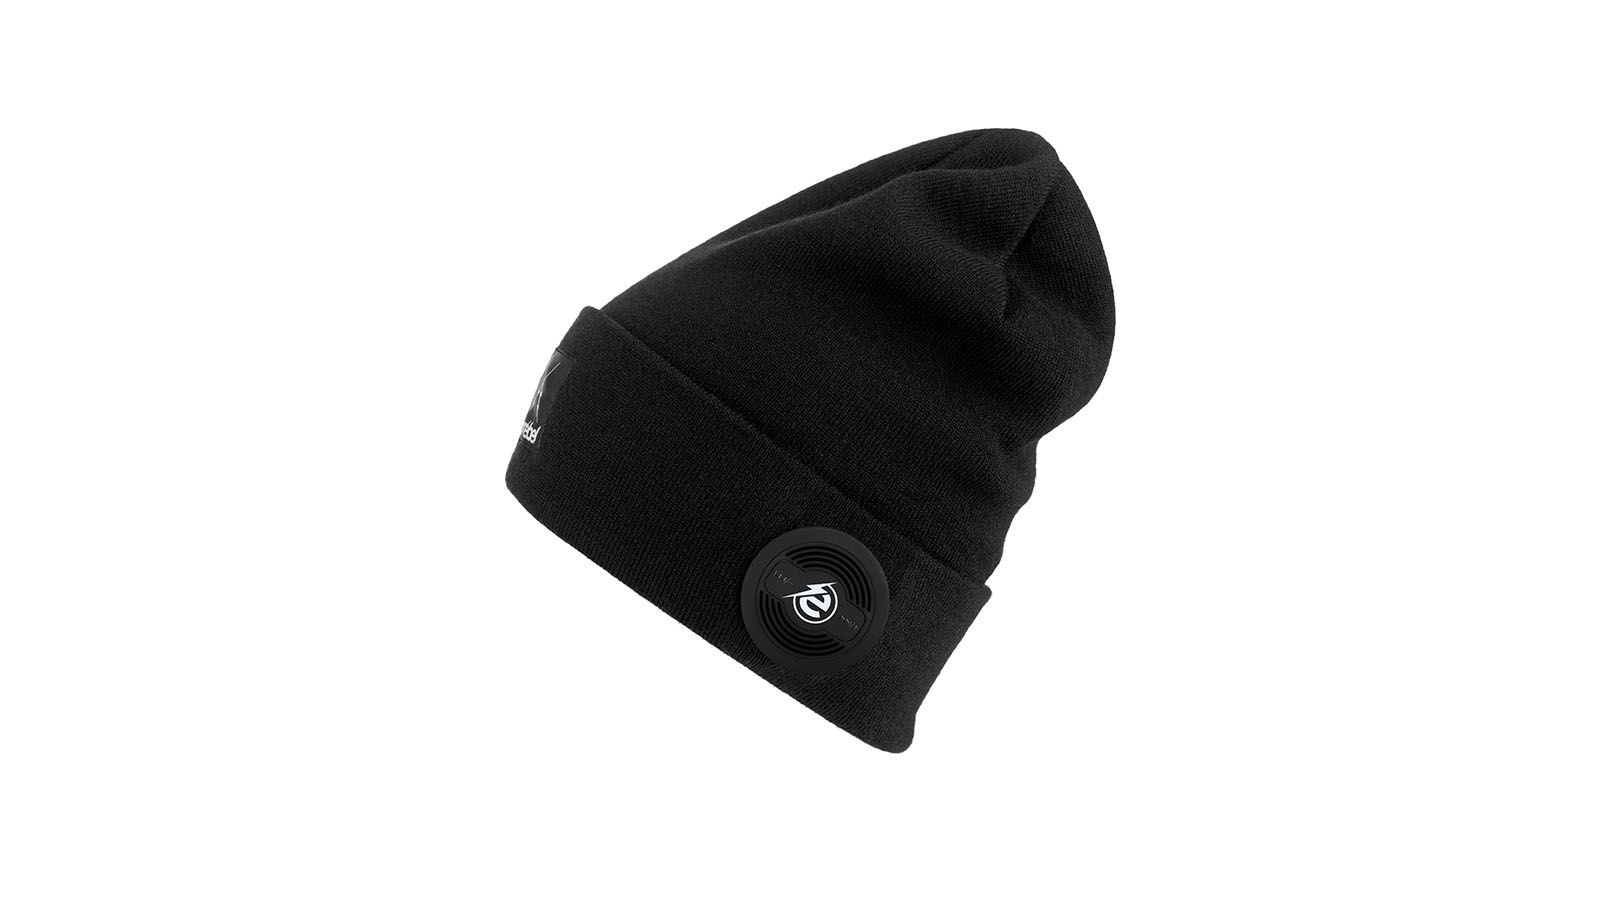 EAREBEL__0003_EL90403_bluetooth_earebel_headset_Street_beanie_black